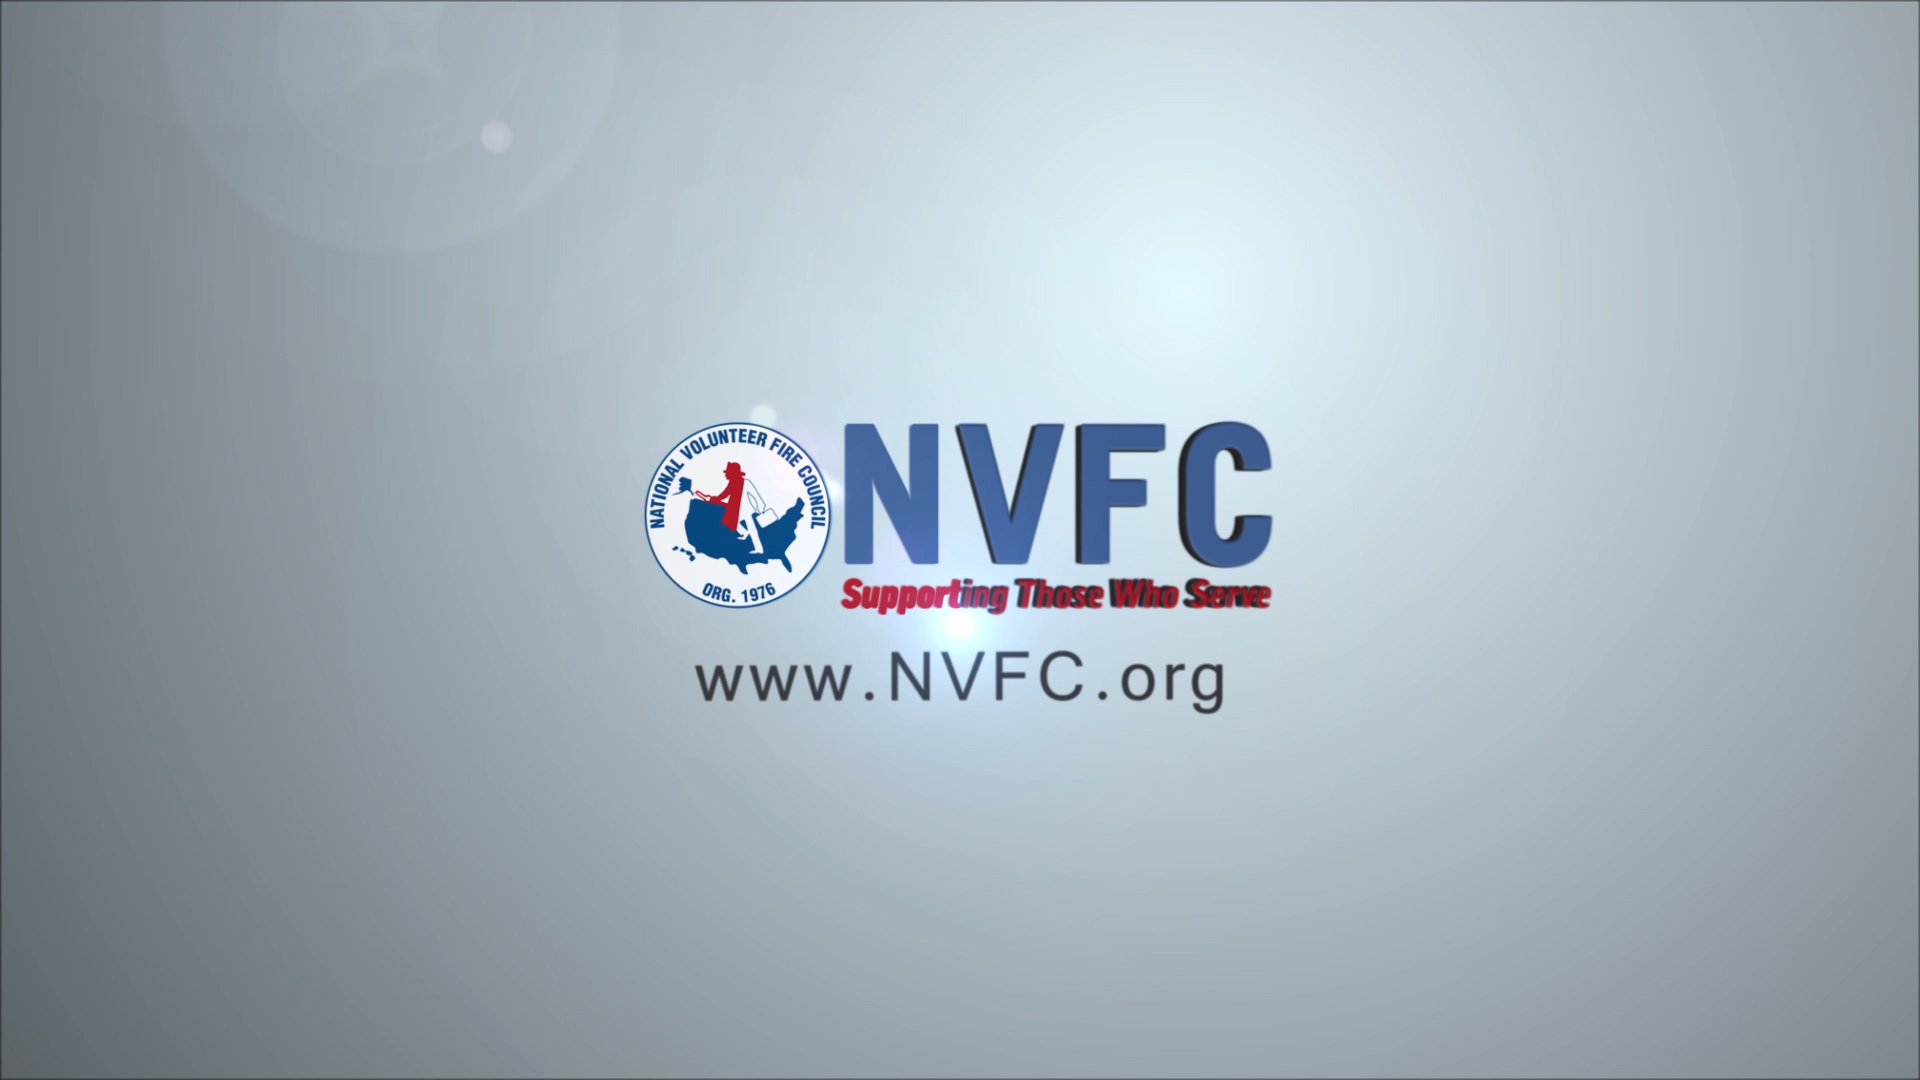 Training and Recruitment Video Screenshot for NVFC